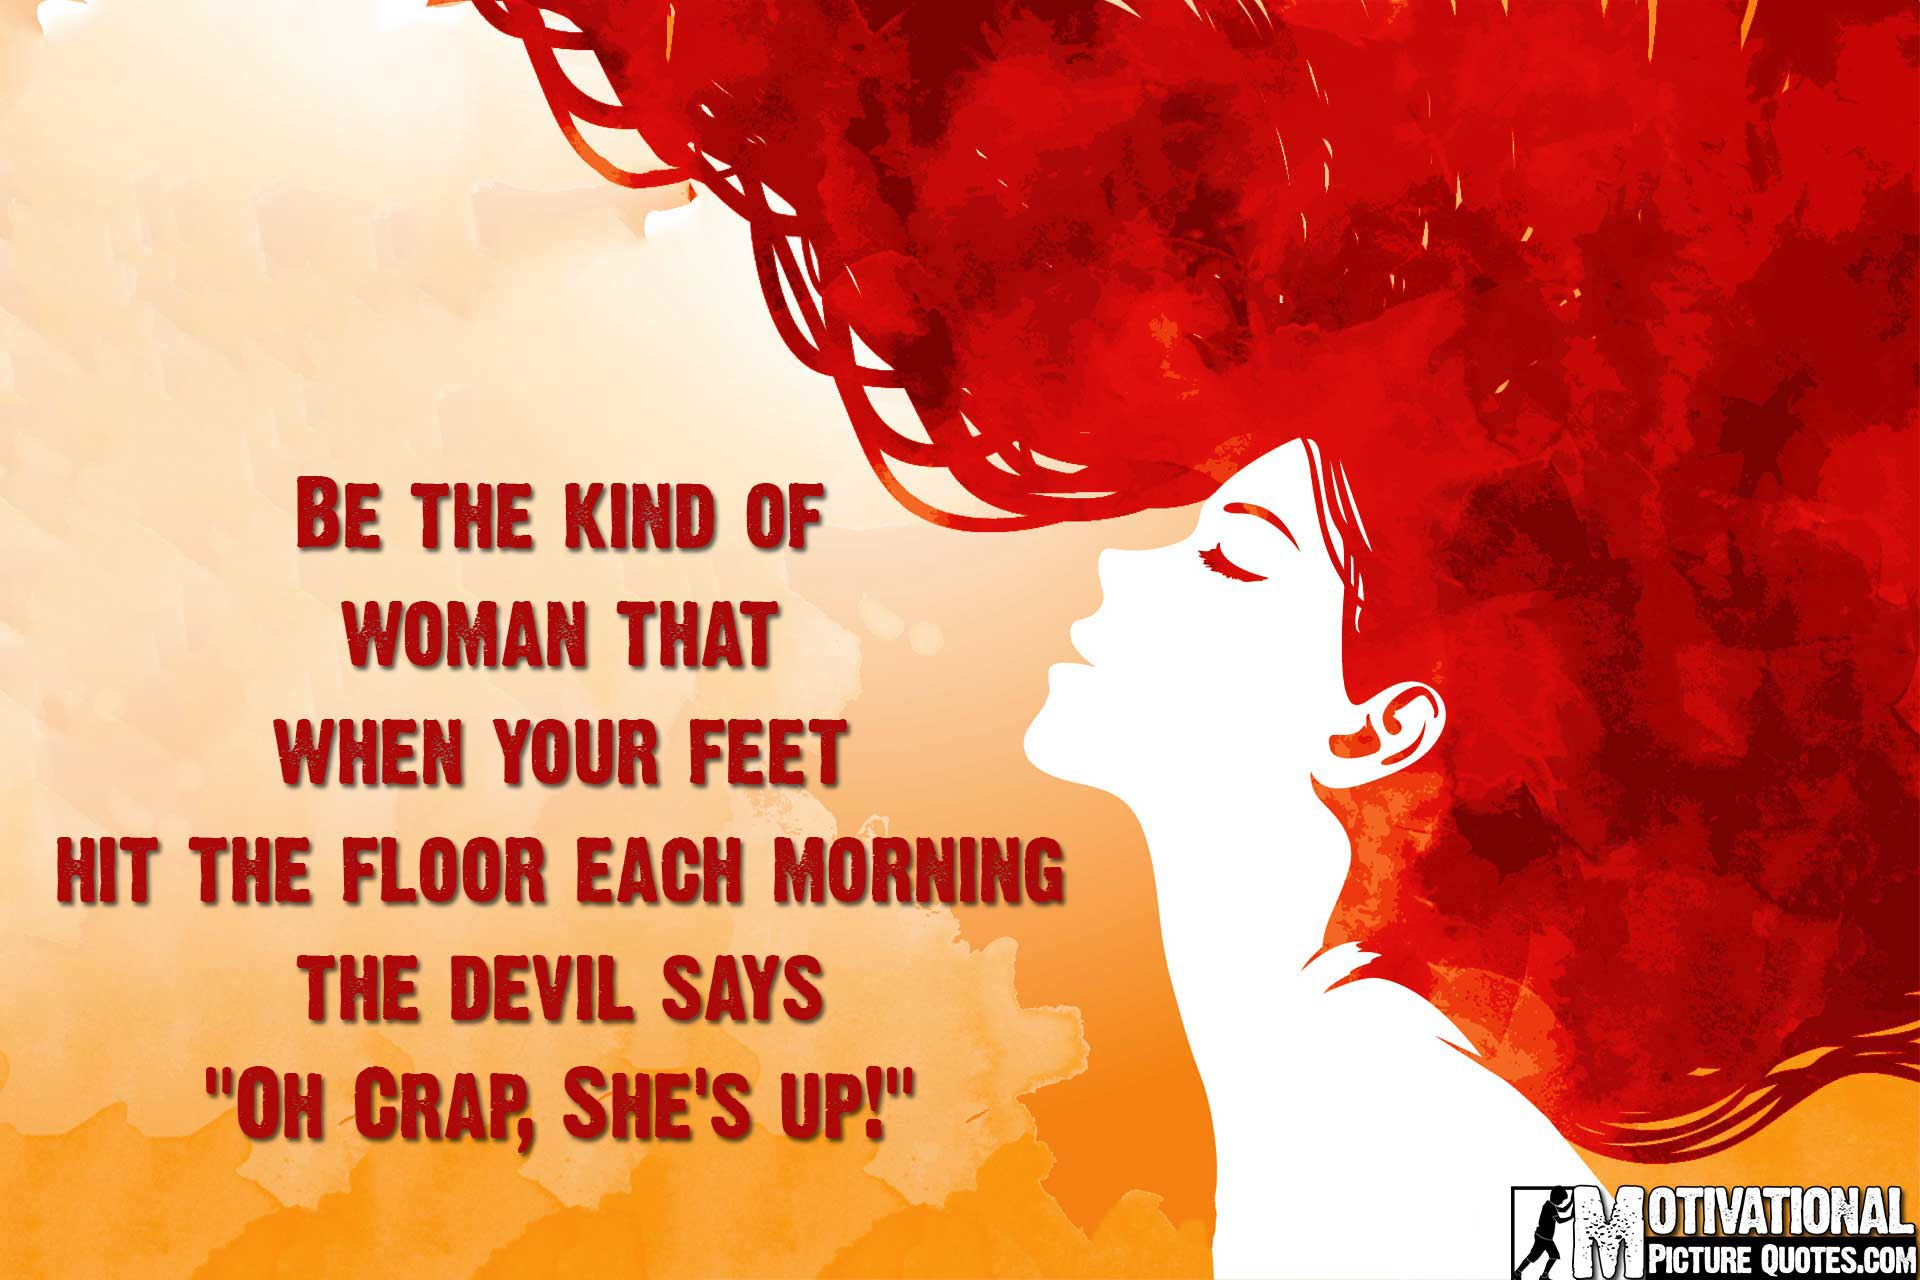 Women Empowerment Quotes Women Empowerment Quotes With Images  Insbright